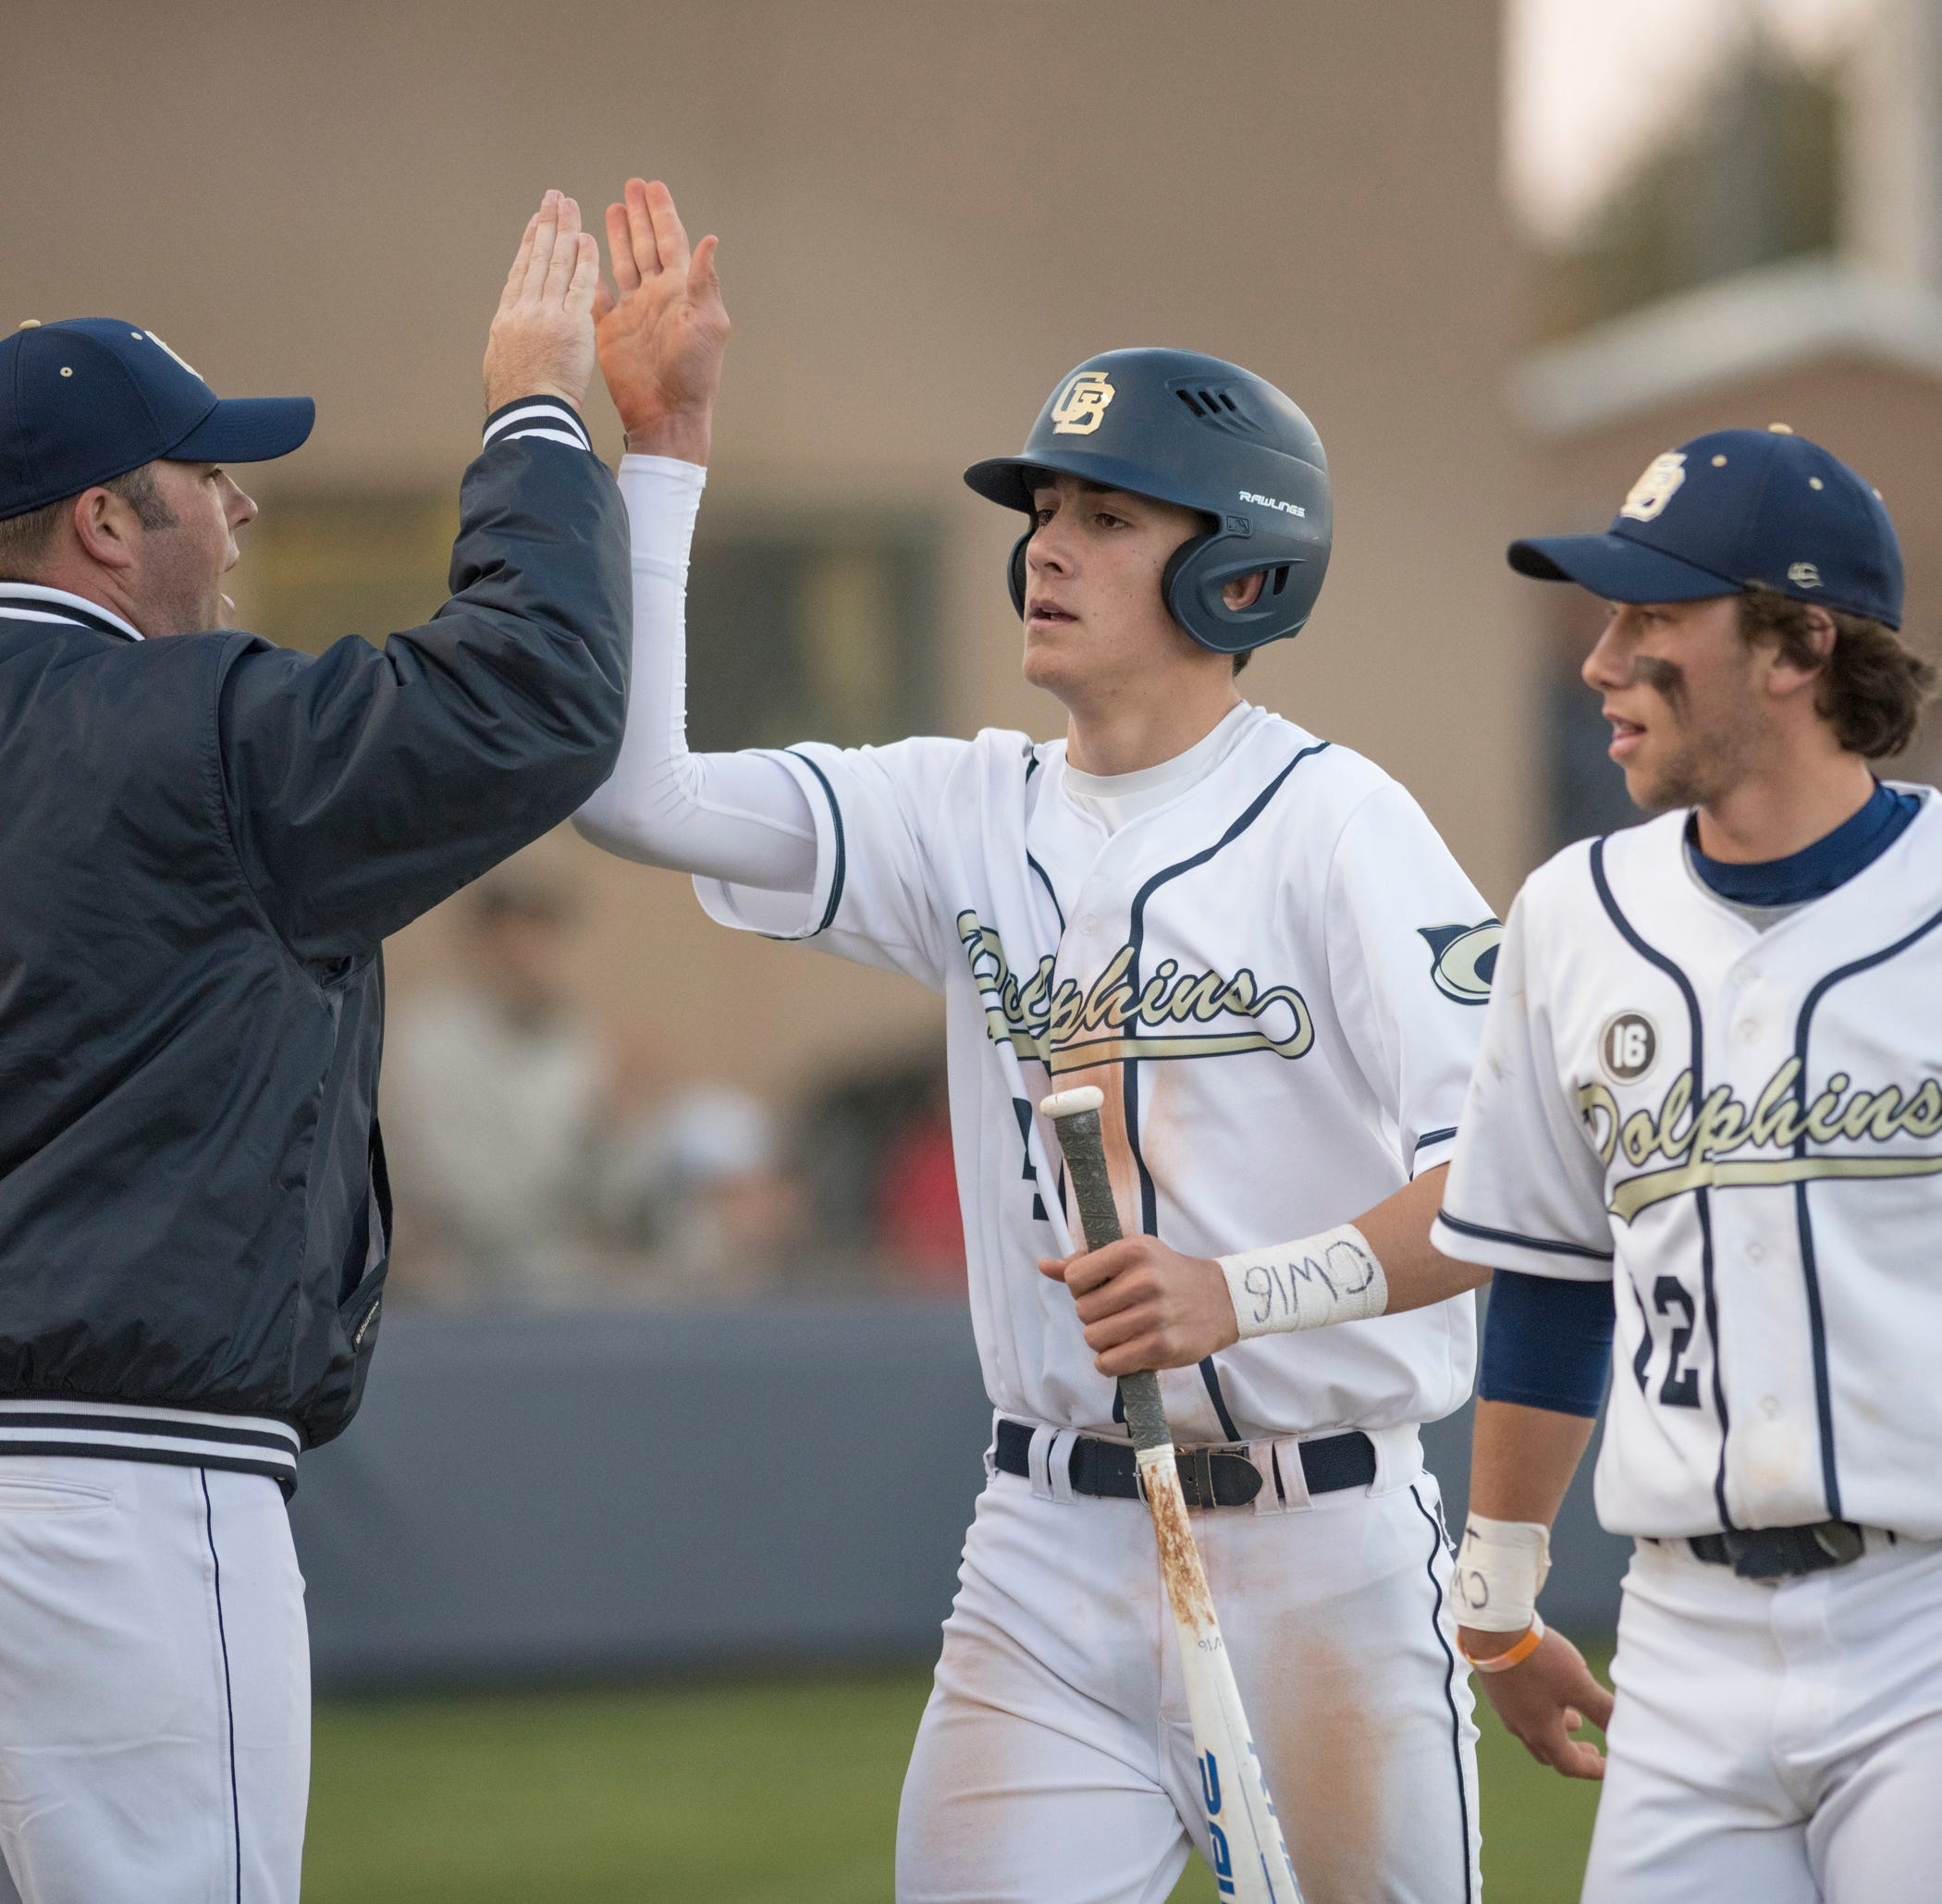 Nik Deweese, Gulf Breeze baseball tradition spotlights remarkable playoff win